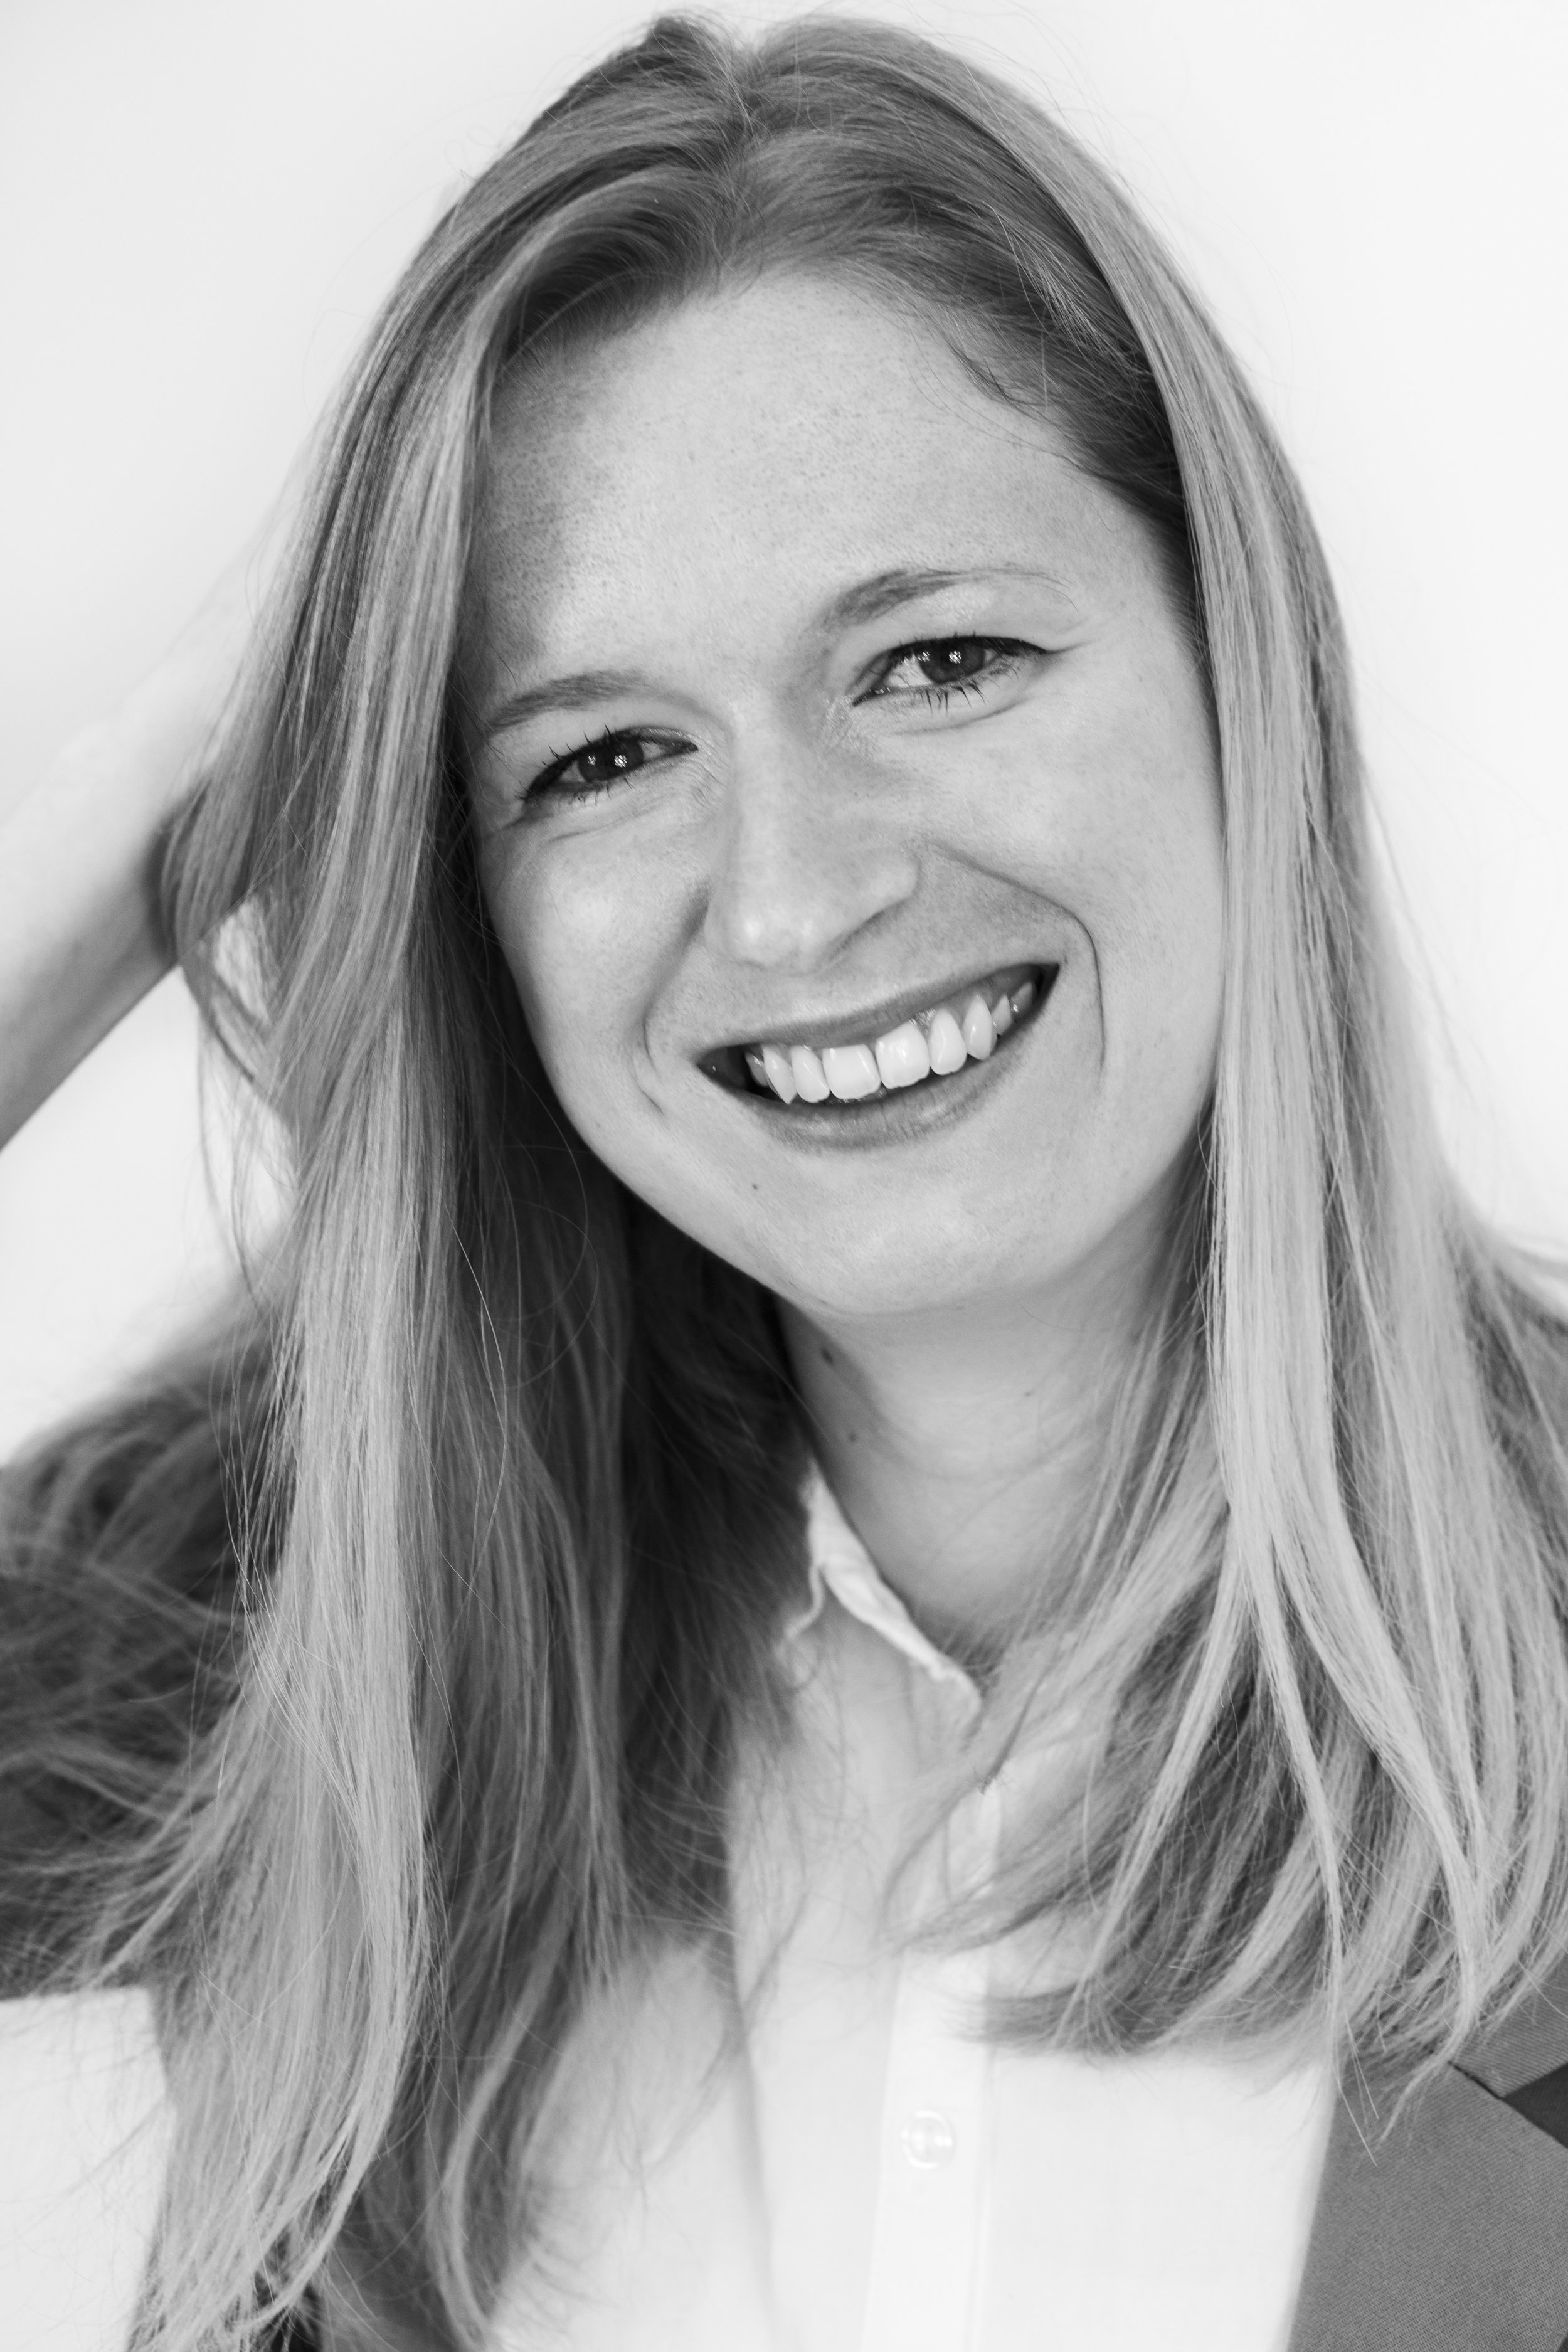 Linda Roos | Online    Linda is a copywriter with a mind full of sharp insights and an unsatisfiable curiousity. She writes on her blog  www.lindaroosenmedia.nl , as well as for DeOndernemer.nl, a website specifically for Dutch entrepreneurs.